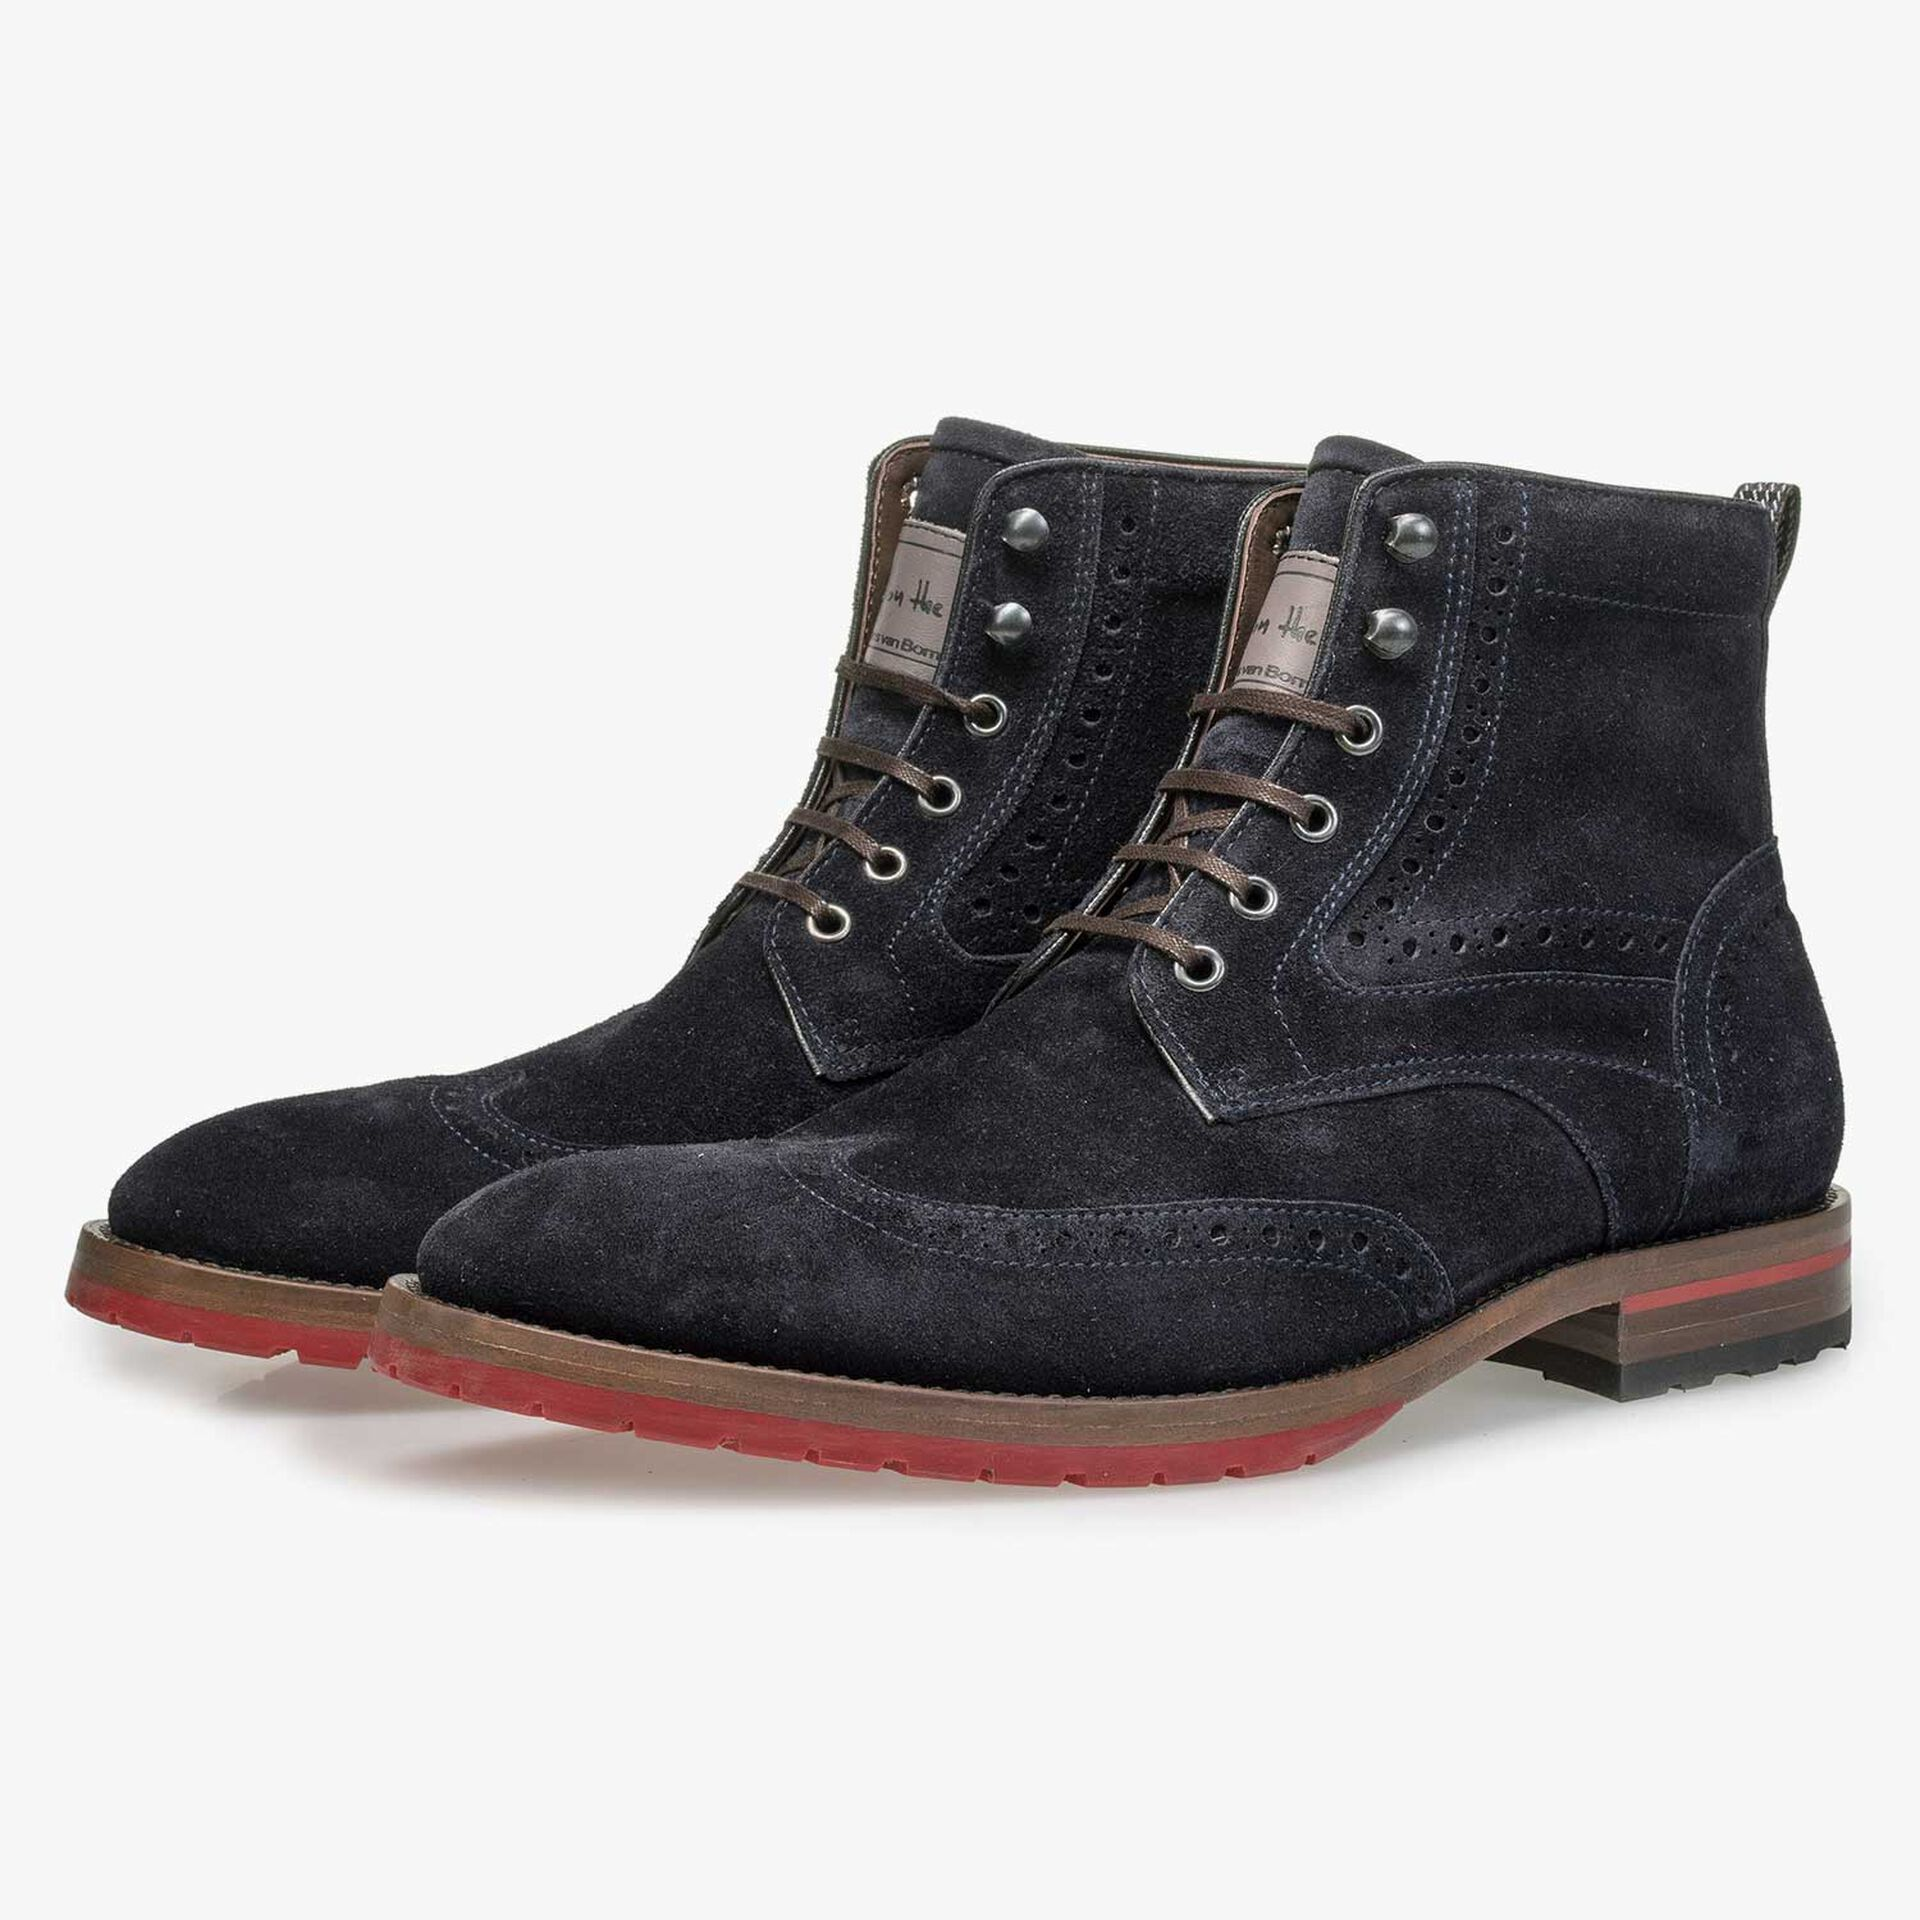 Blue suede leather lace boot with red outsole